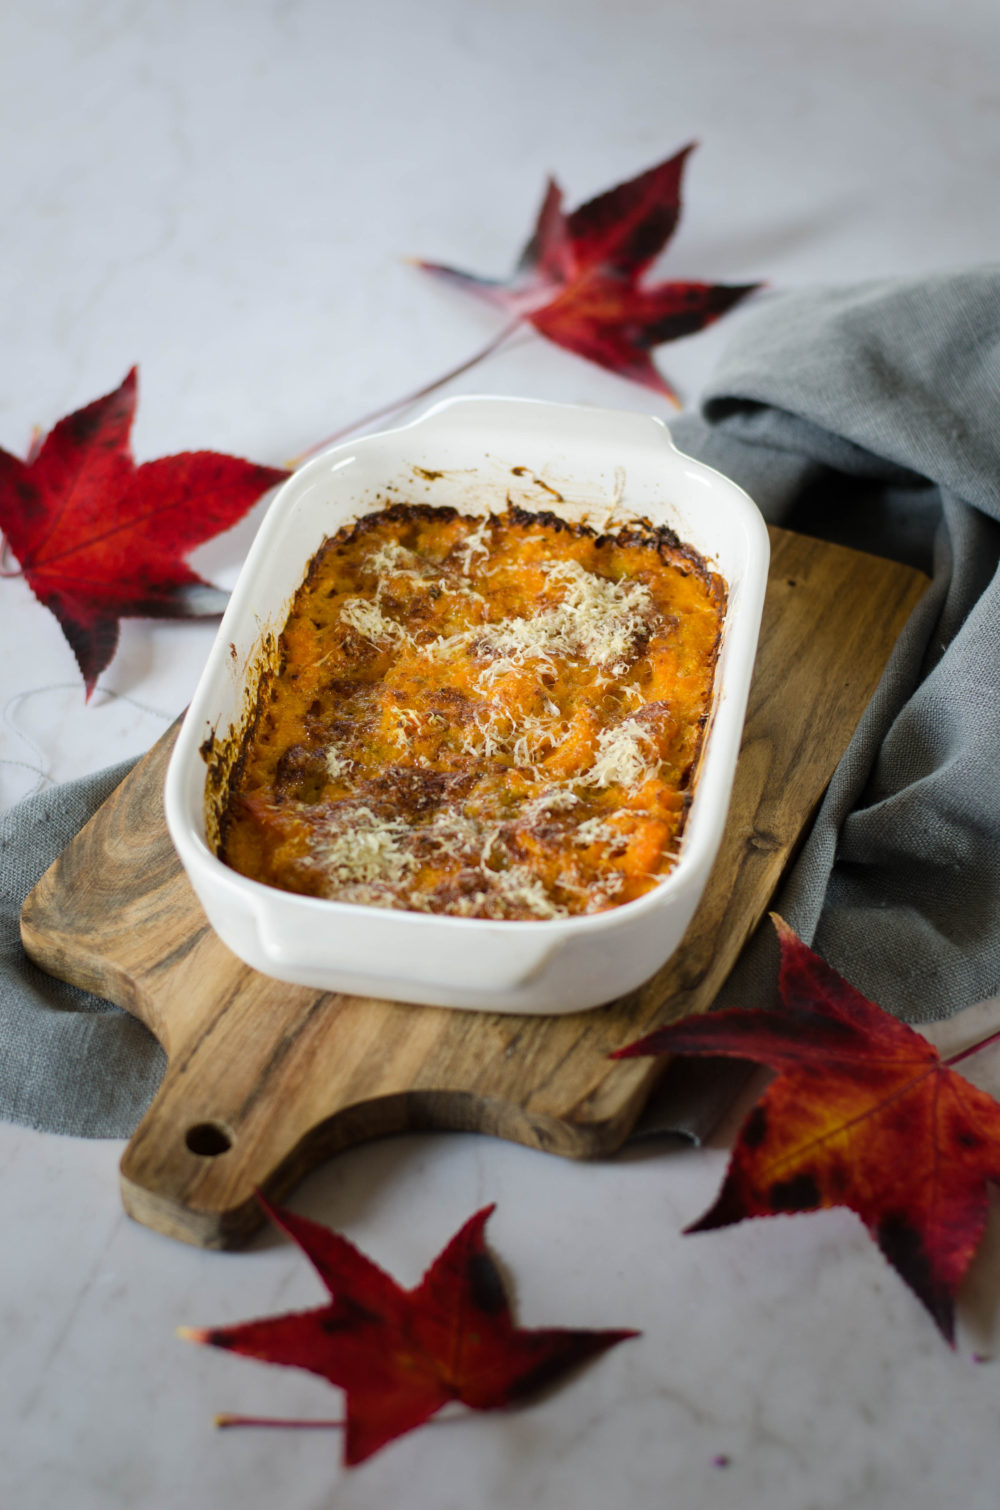 Extraordinaire Puree De Potimarron Facon Grand Mere gratin de potimarron